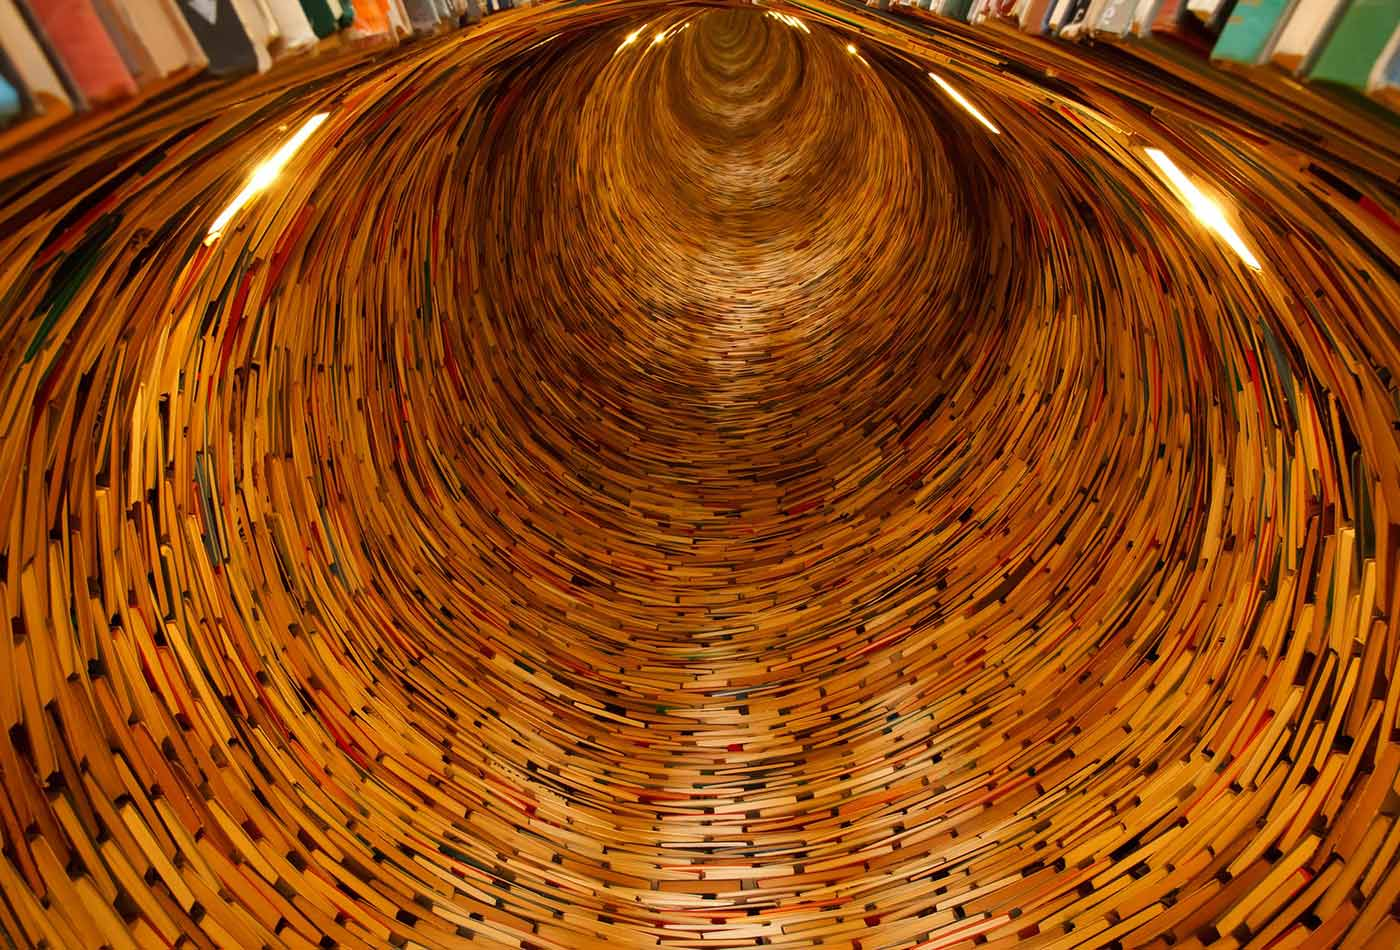 Tunnel of knowledge